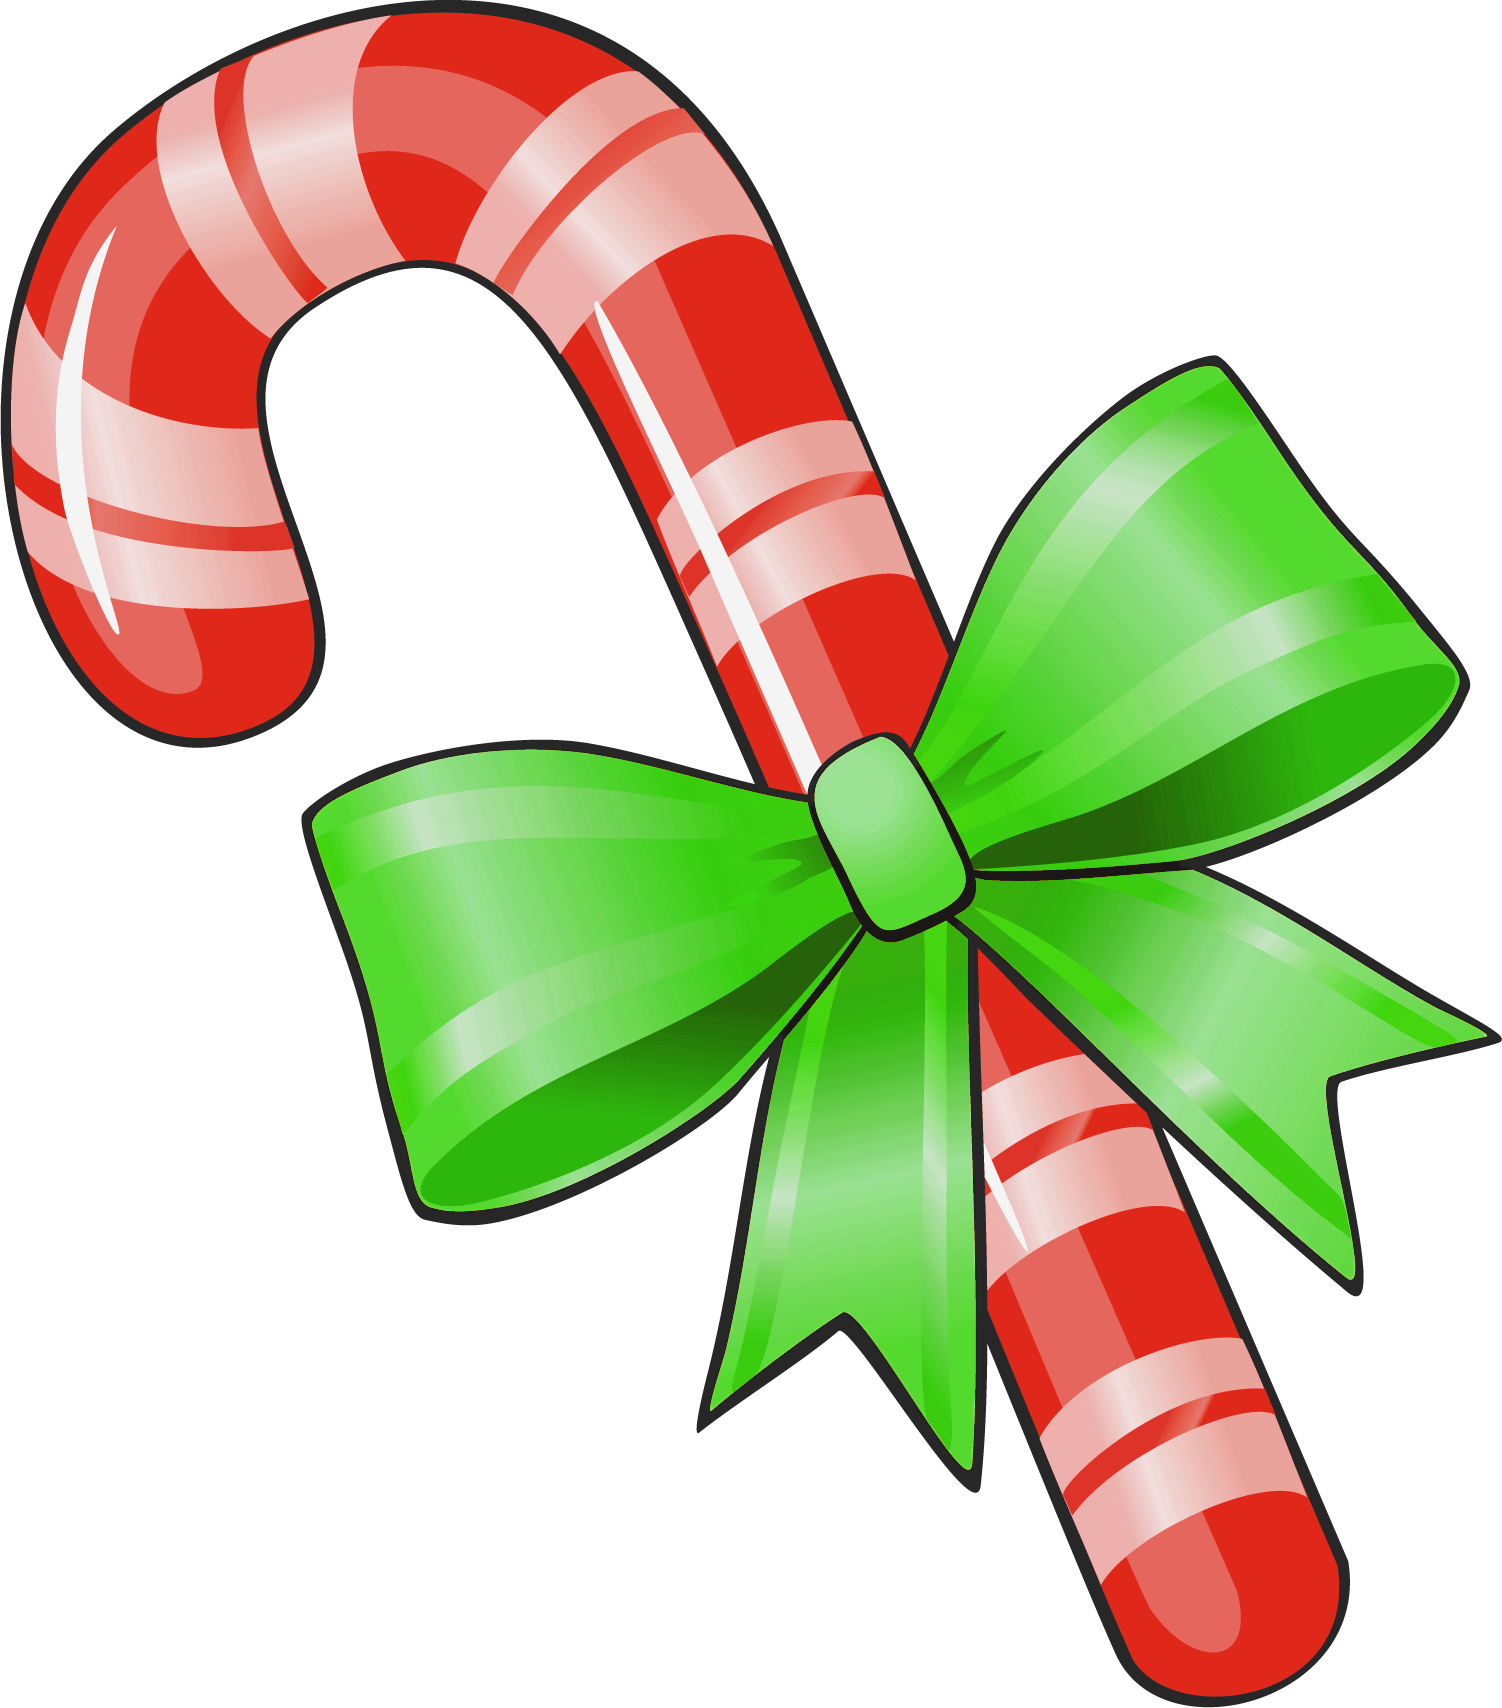 Candy Cane Christmas Clip Art Free Clip -Candy cane christmas clip art free clip art images free graphics 2-12